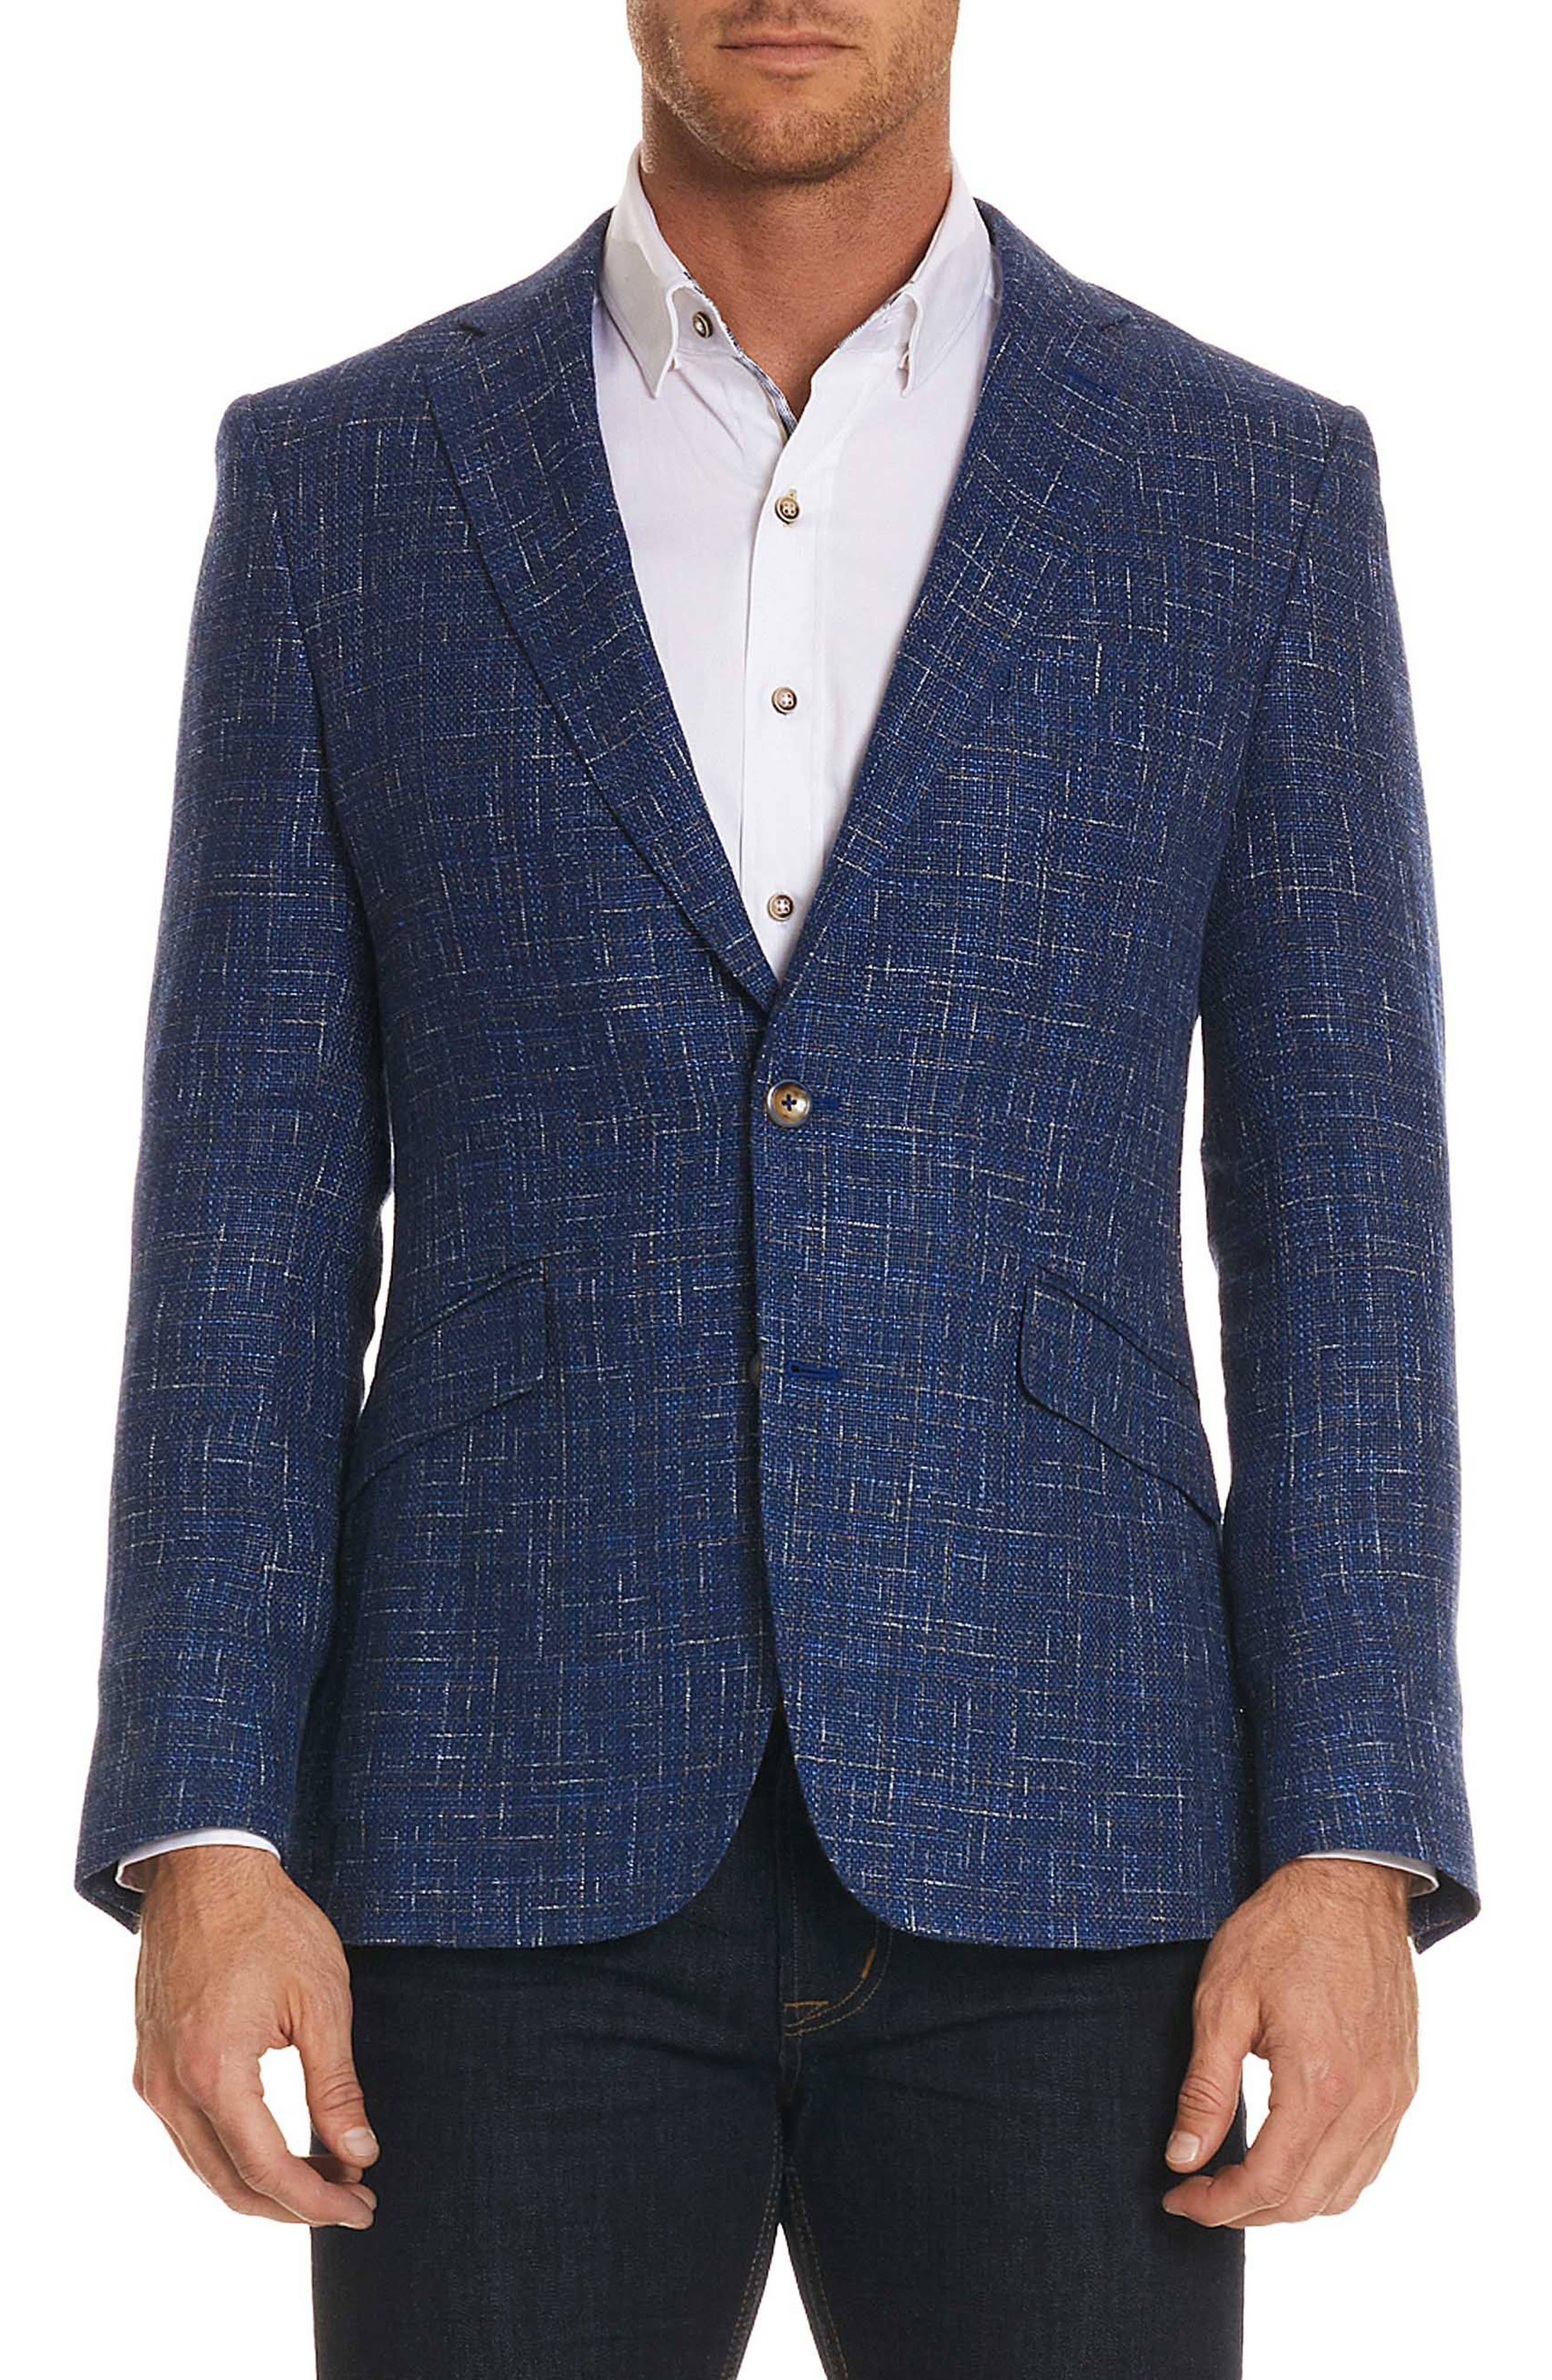 Jeremy Tailored Fit Sportcoat,                             Main thumbnail 1, color,                             BLUE